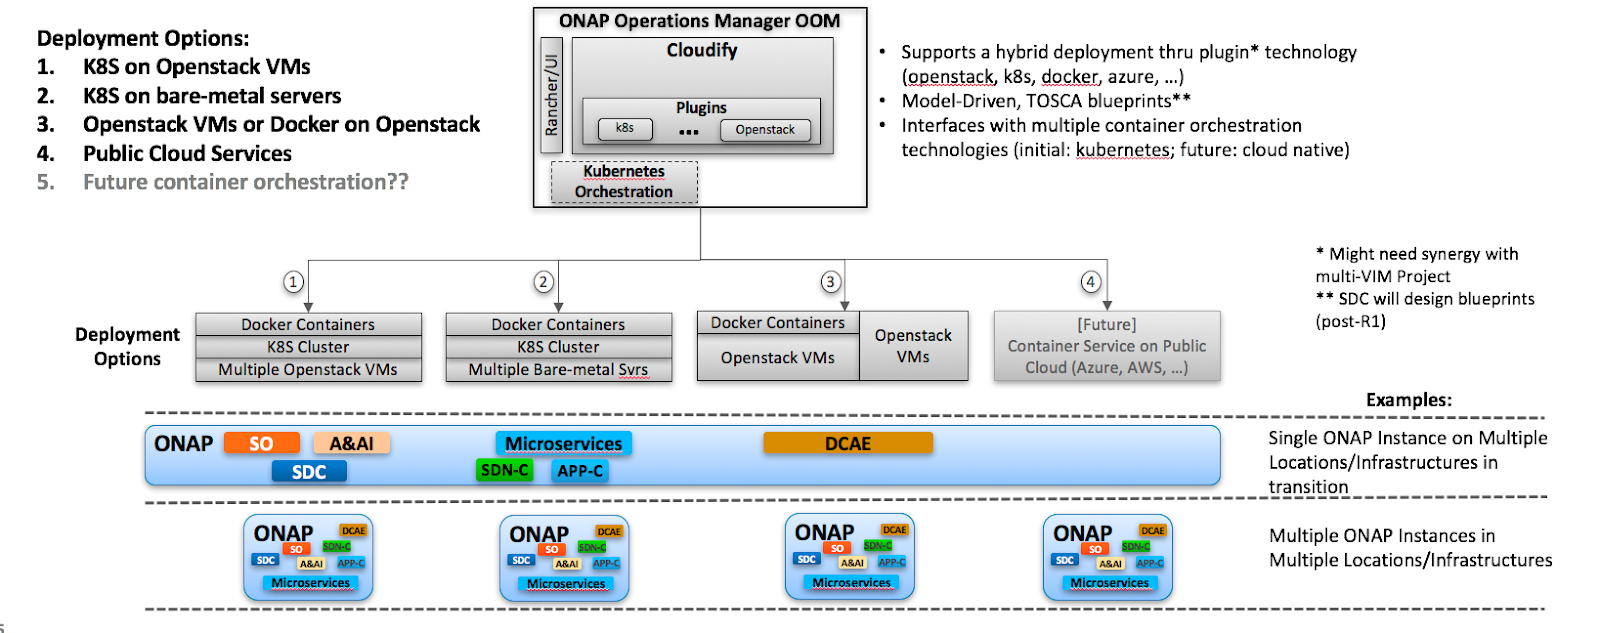 Oom with tosca and cloudify developer wiki confluence self healing and scaling cloudify provides built in support to allow self healing and scaling of kubernetes compute resources in case of a failure malvernweather Choice Image